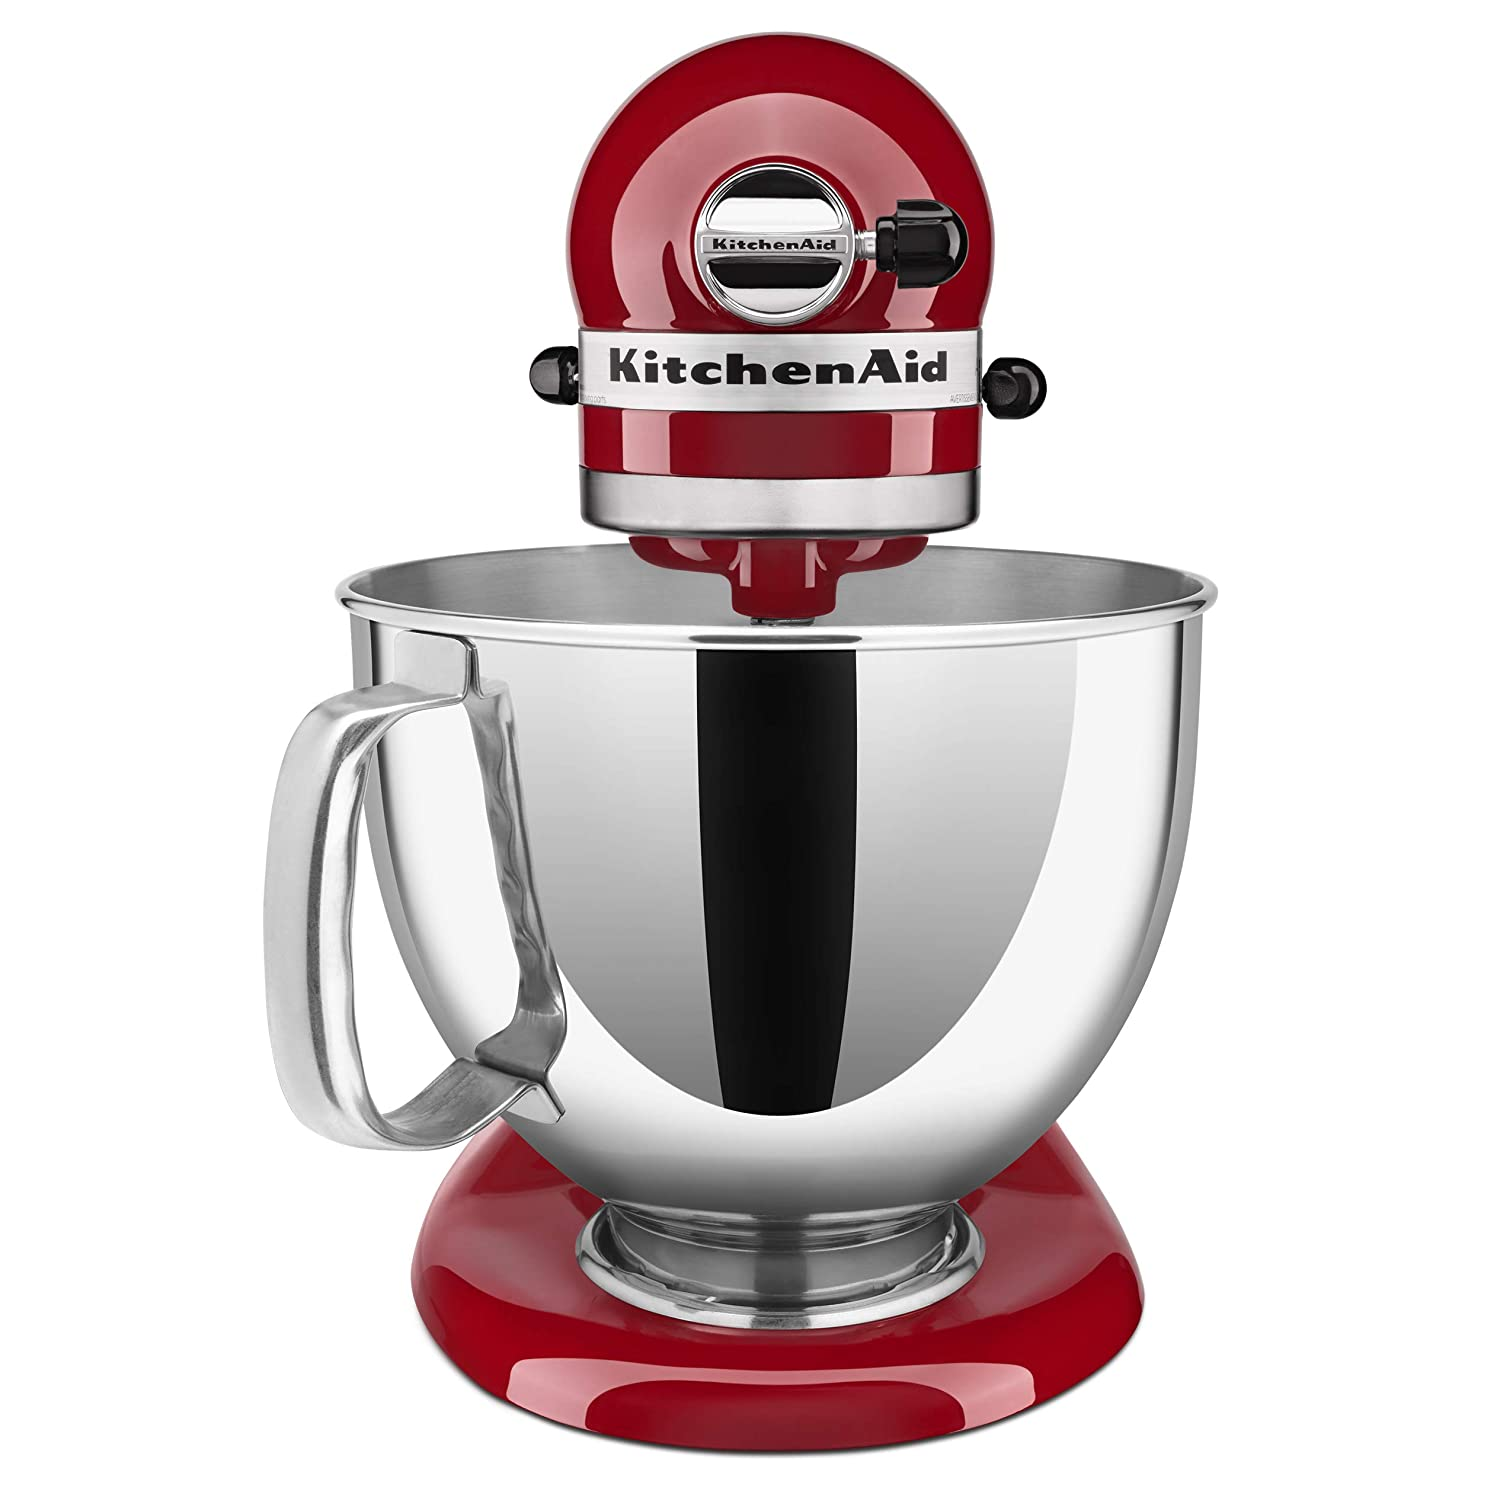 KitchenAid KSM150PSER - Batidora amasadora, color rojo ...